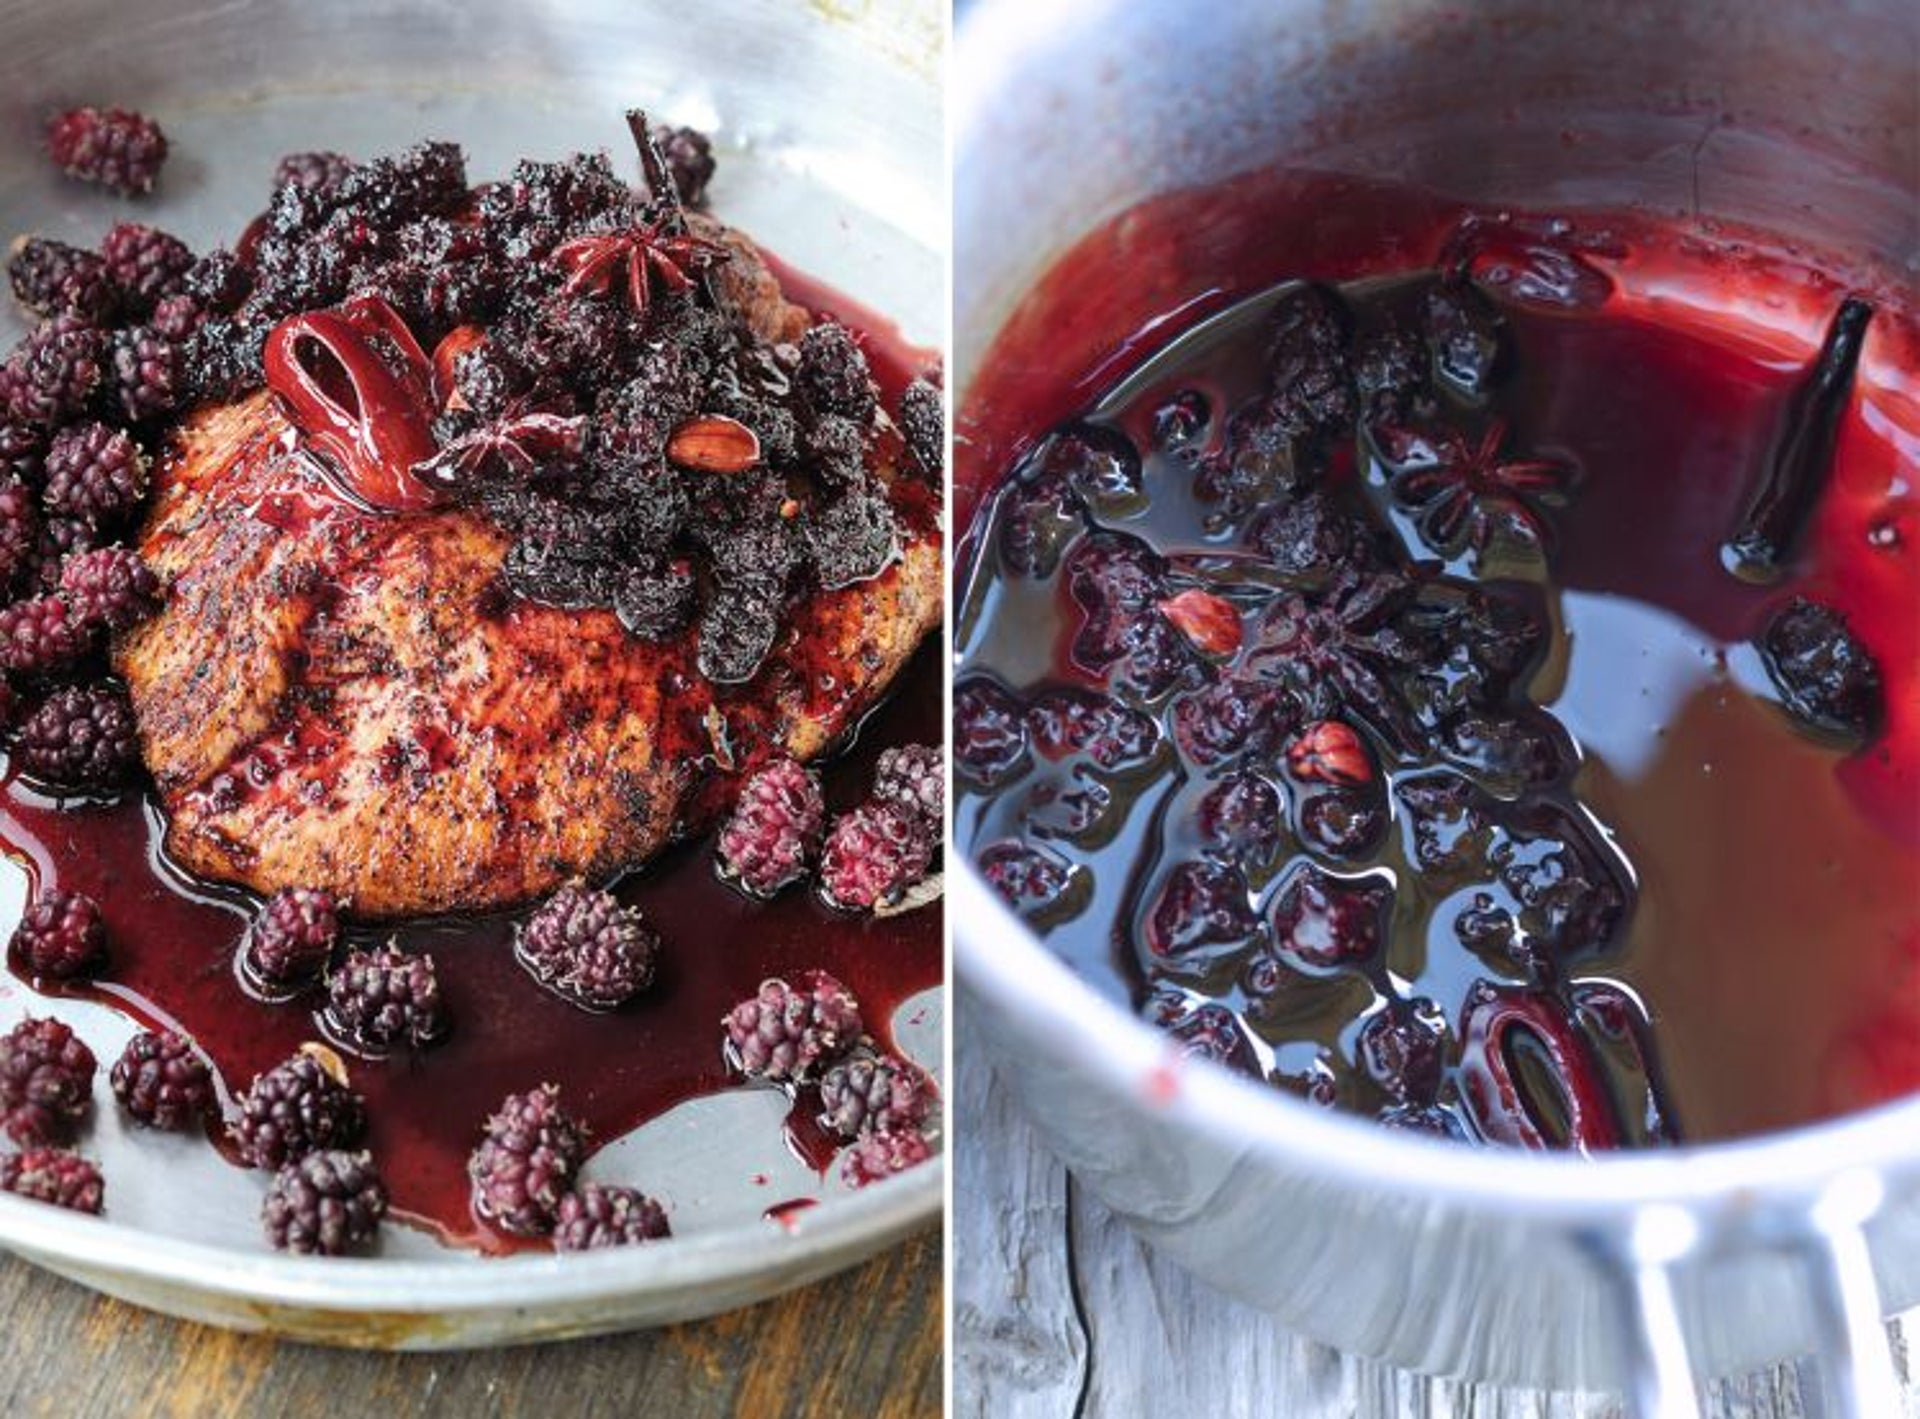 Chef Erez Komarovsky's chicken with black mulberry preserves (left) and freshly picked berries.